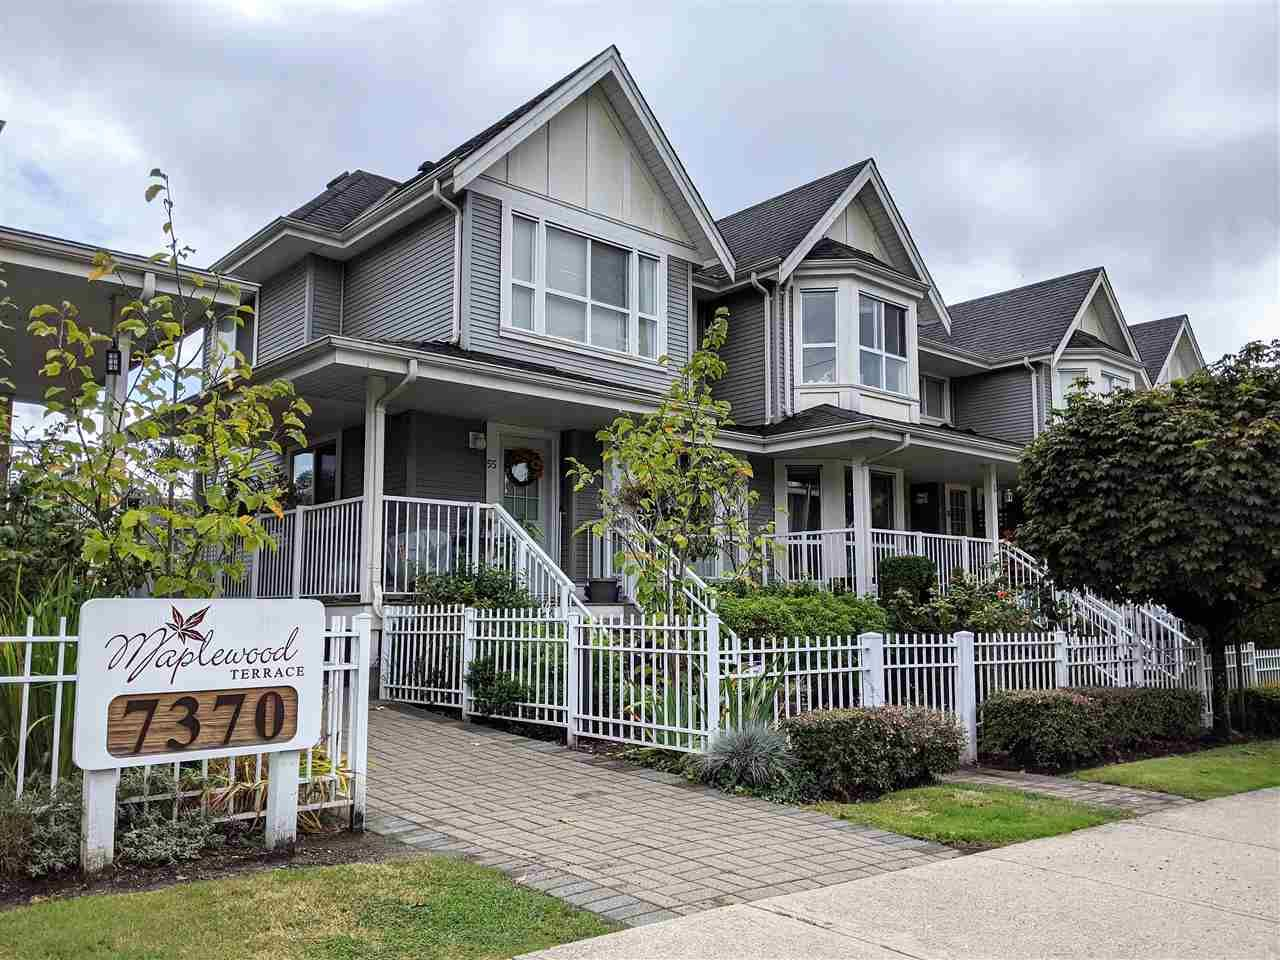 Main Photo: 37 7370 STRIDE AVENUE in Burnaby: Edmonds BE Townhouse for sale (Burnaby East)  : MLS®# R2504221